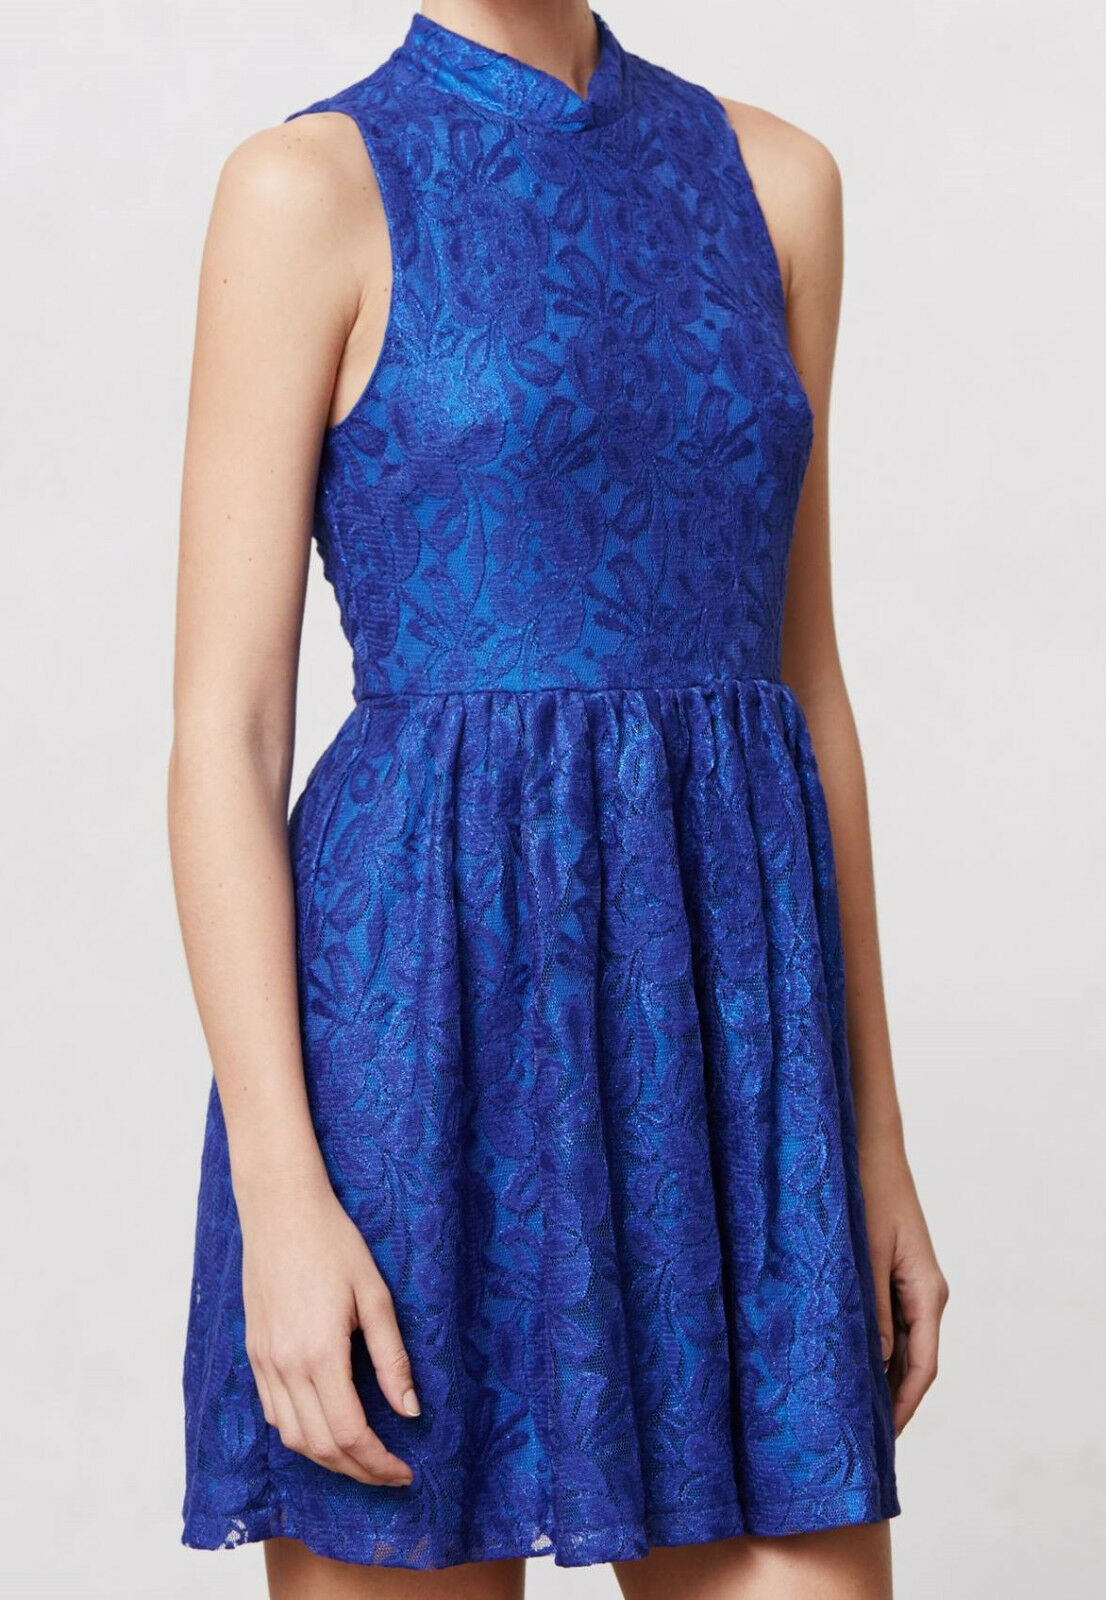 01545ddc5a2e Moulinette Soeurs Cobalt Harlow Dress Sizes Small, Medium NW ANTHROPOLOGIE  Tag